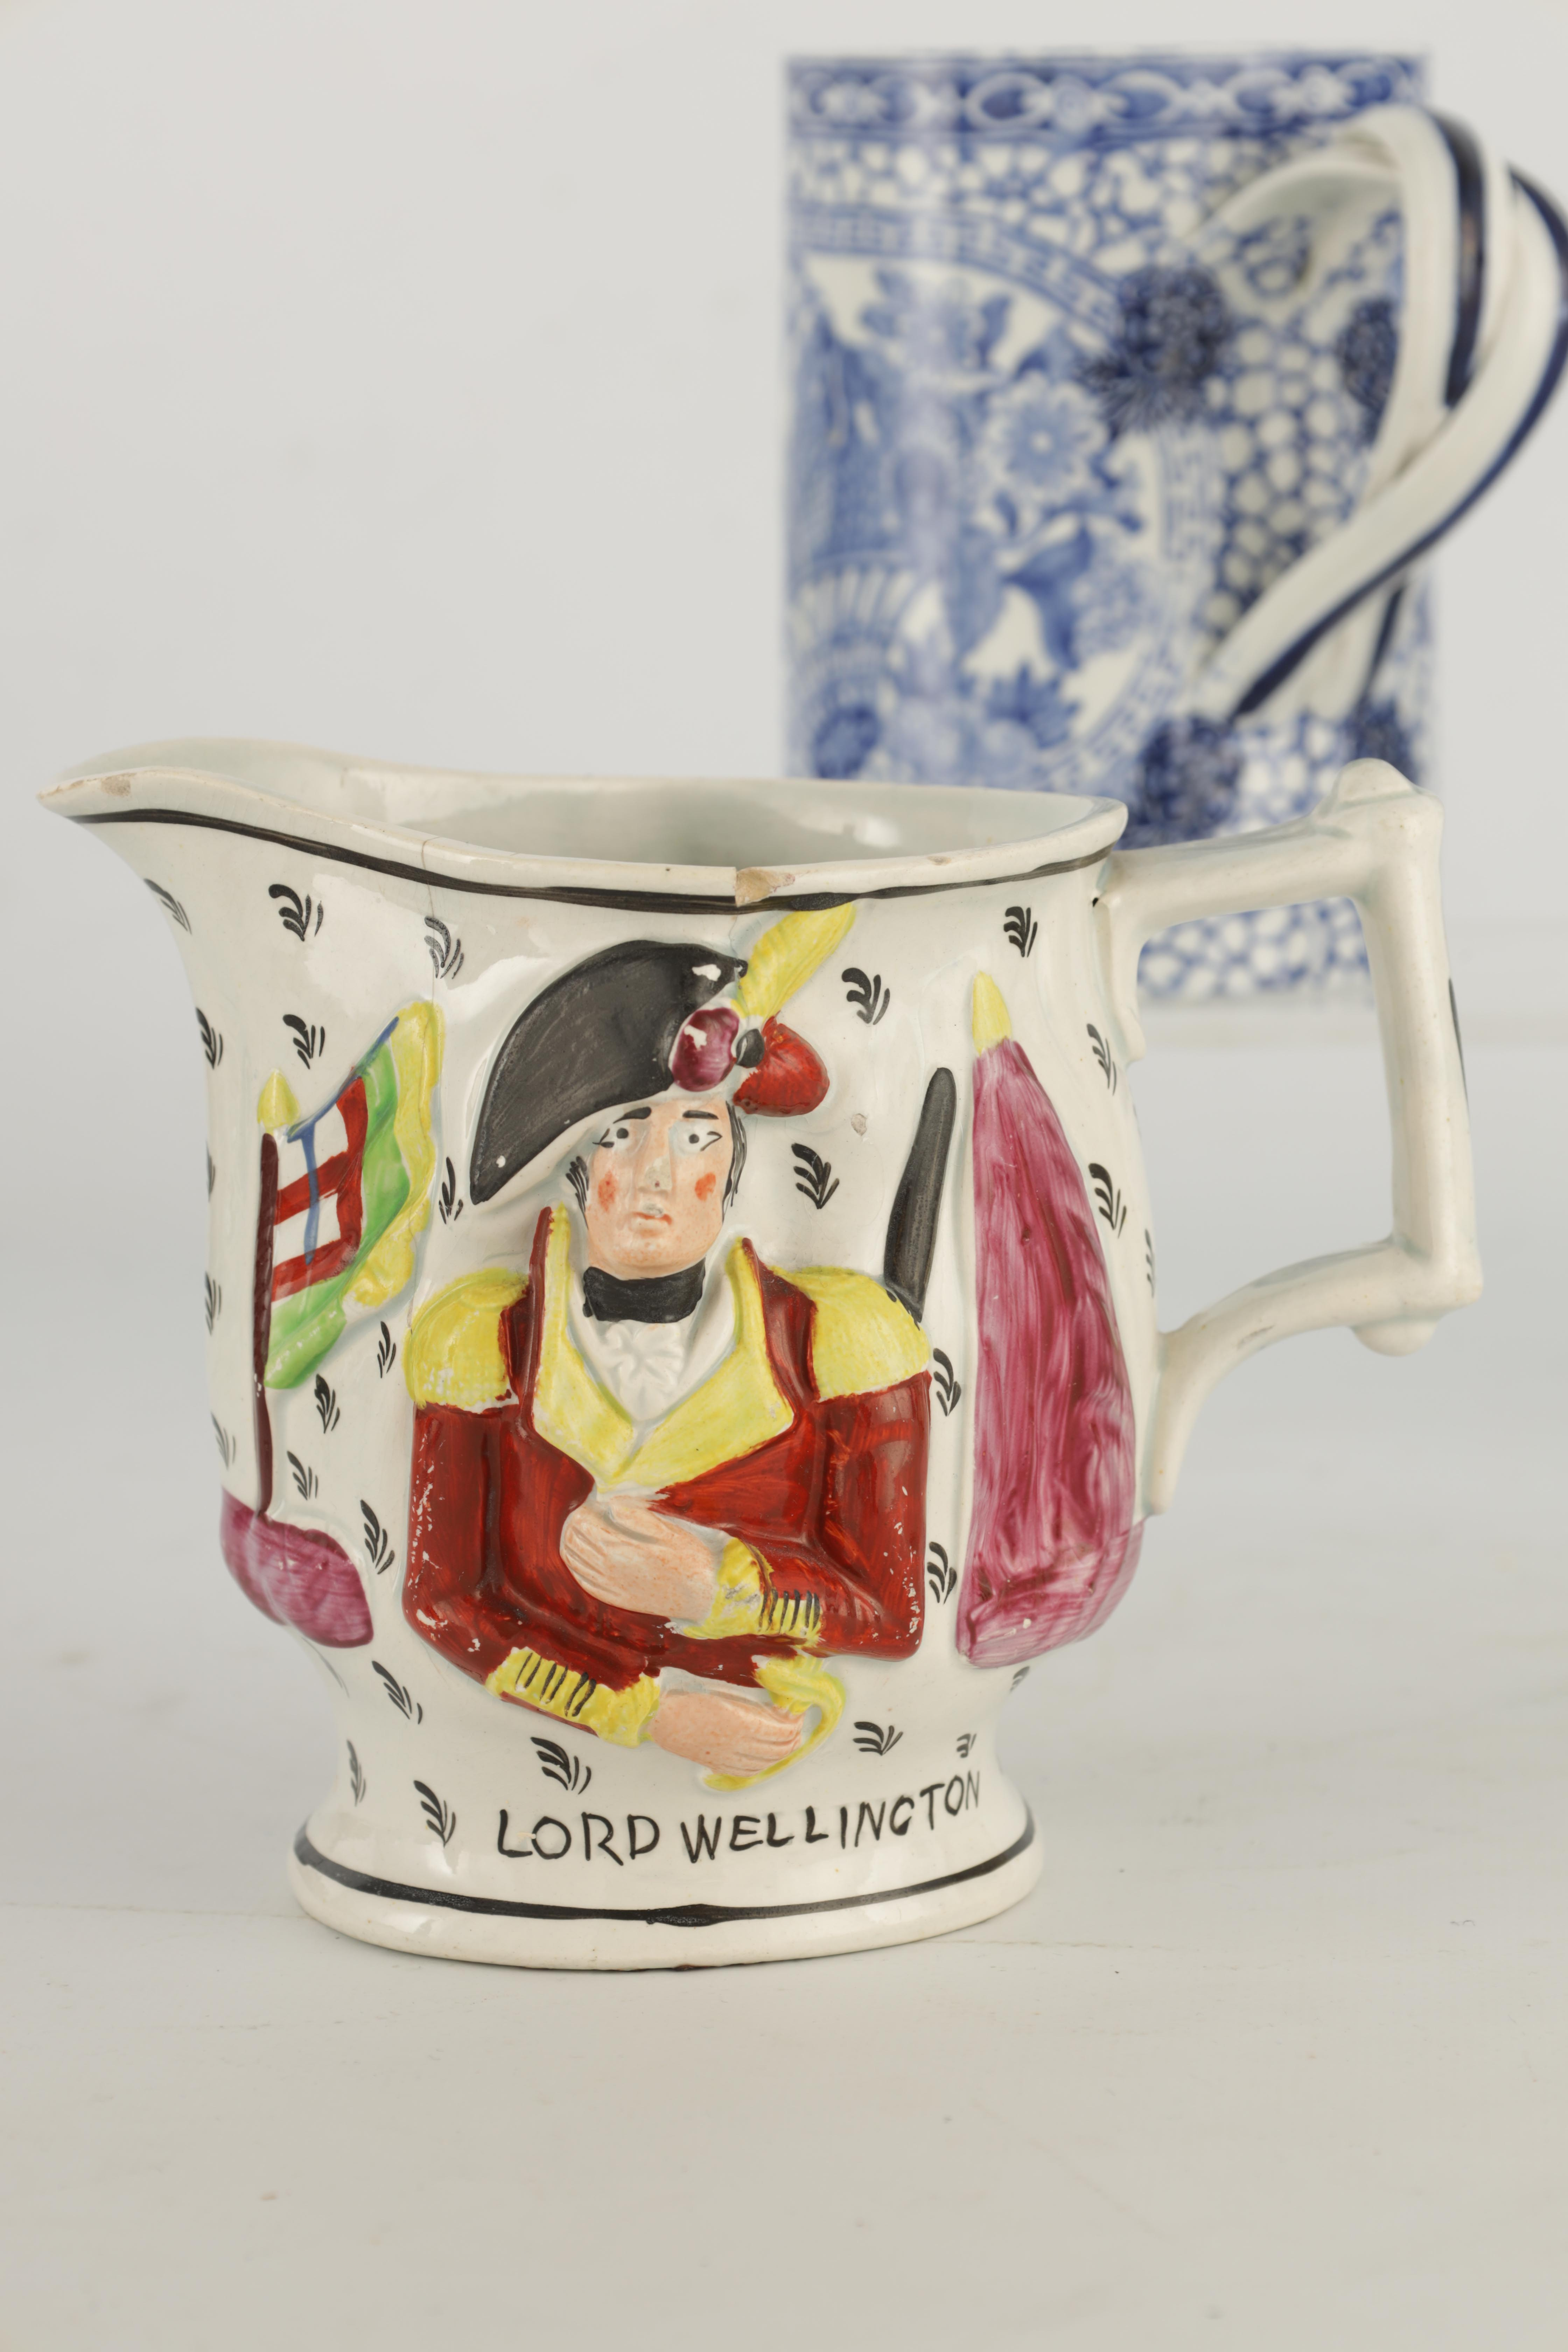 A 19TH CENTURY PEARLWARE JUG WITH RELIEF MOULDED PANELS OF LORD WELLINGTON AND GENERAL HILL on a - Image 6 of 17